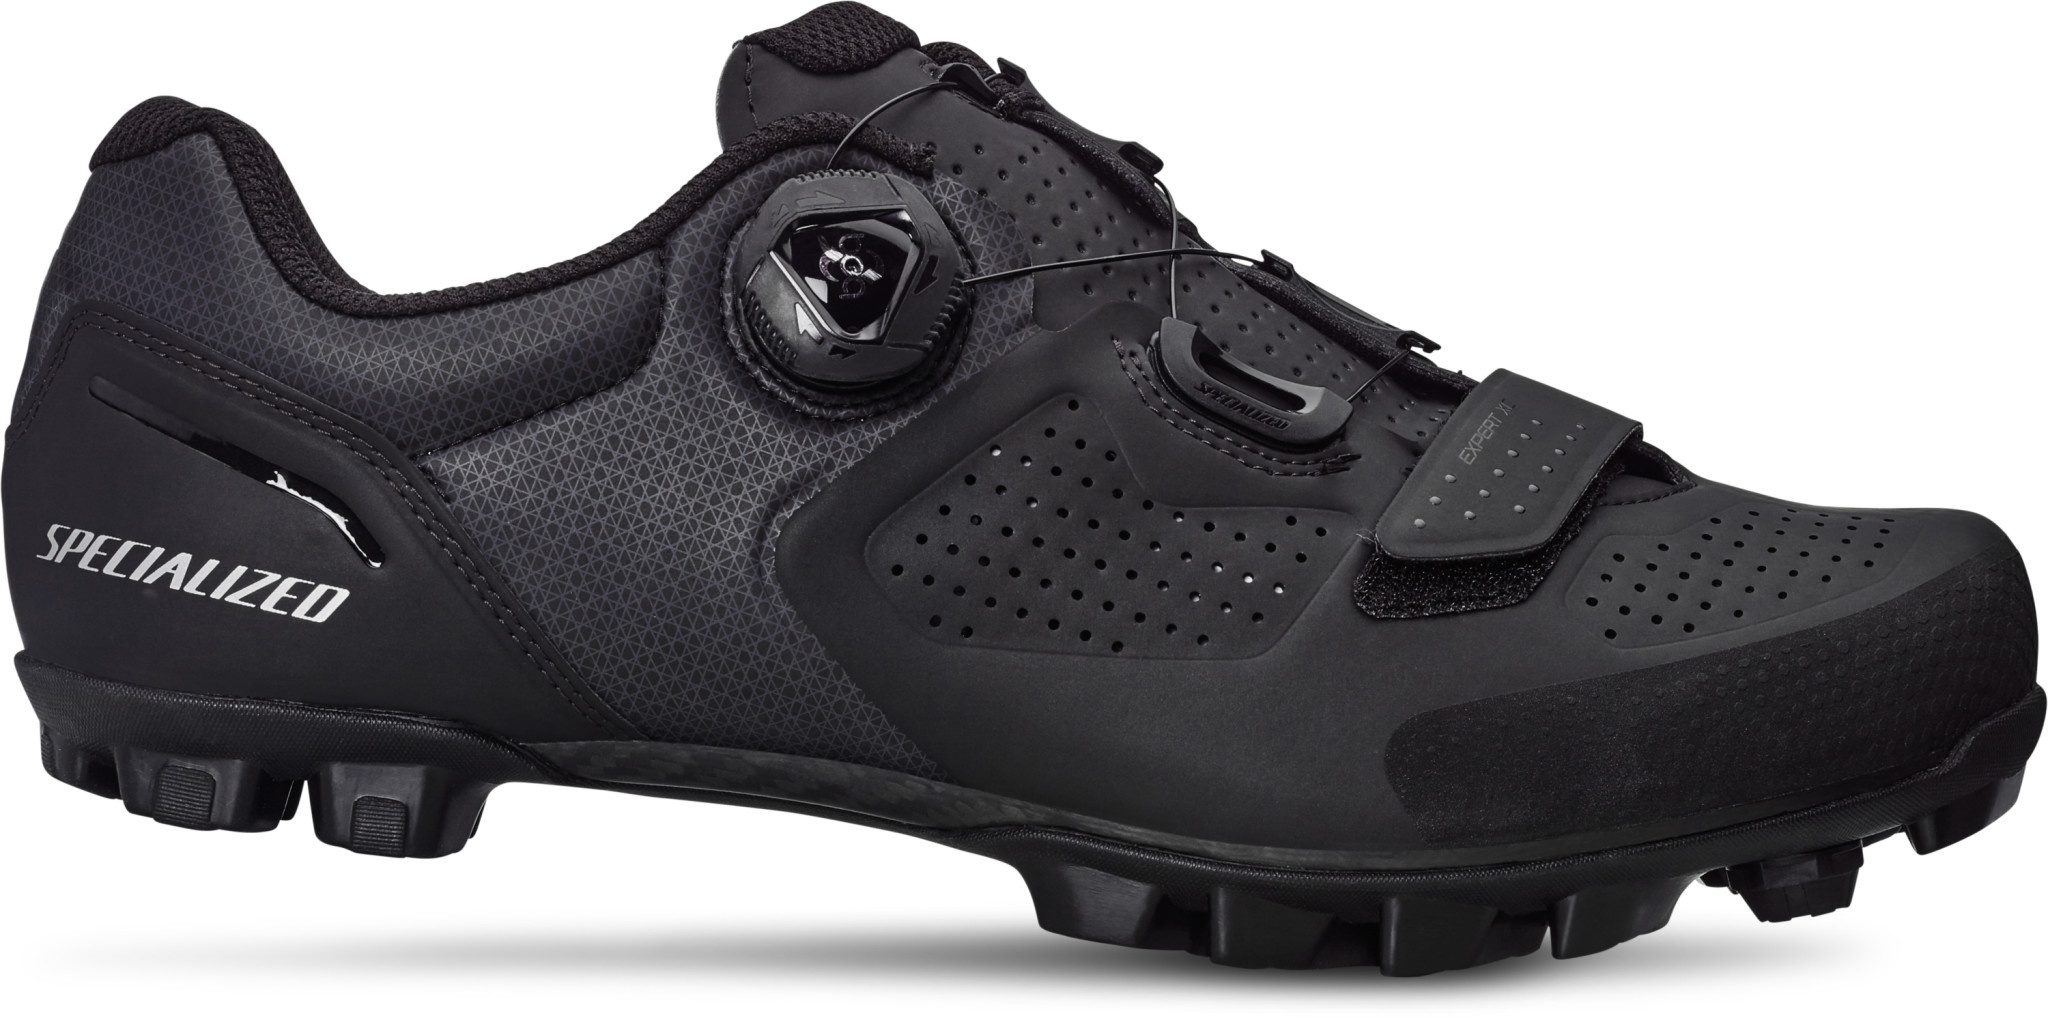 Specialized Expert Xc Mtb Shoes Blk